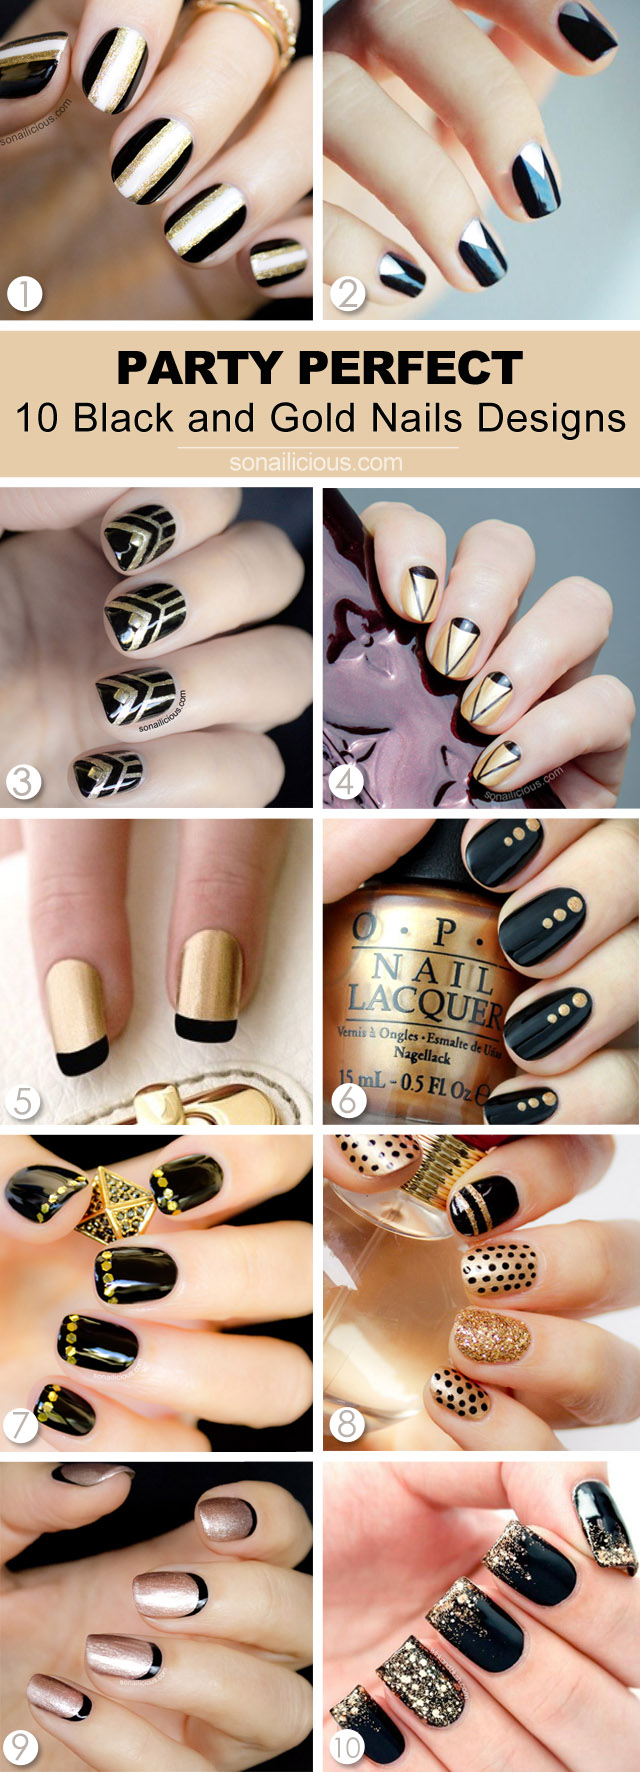 10 BEST BLACK AND GOLD NAIL DESIGNS